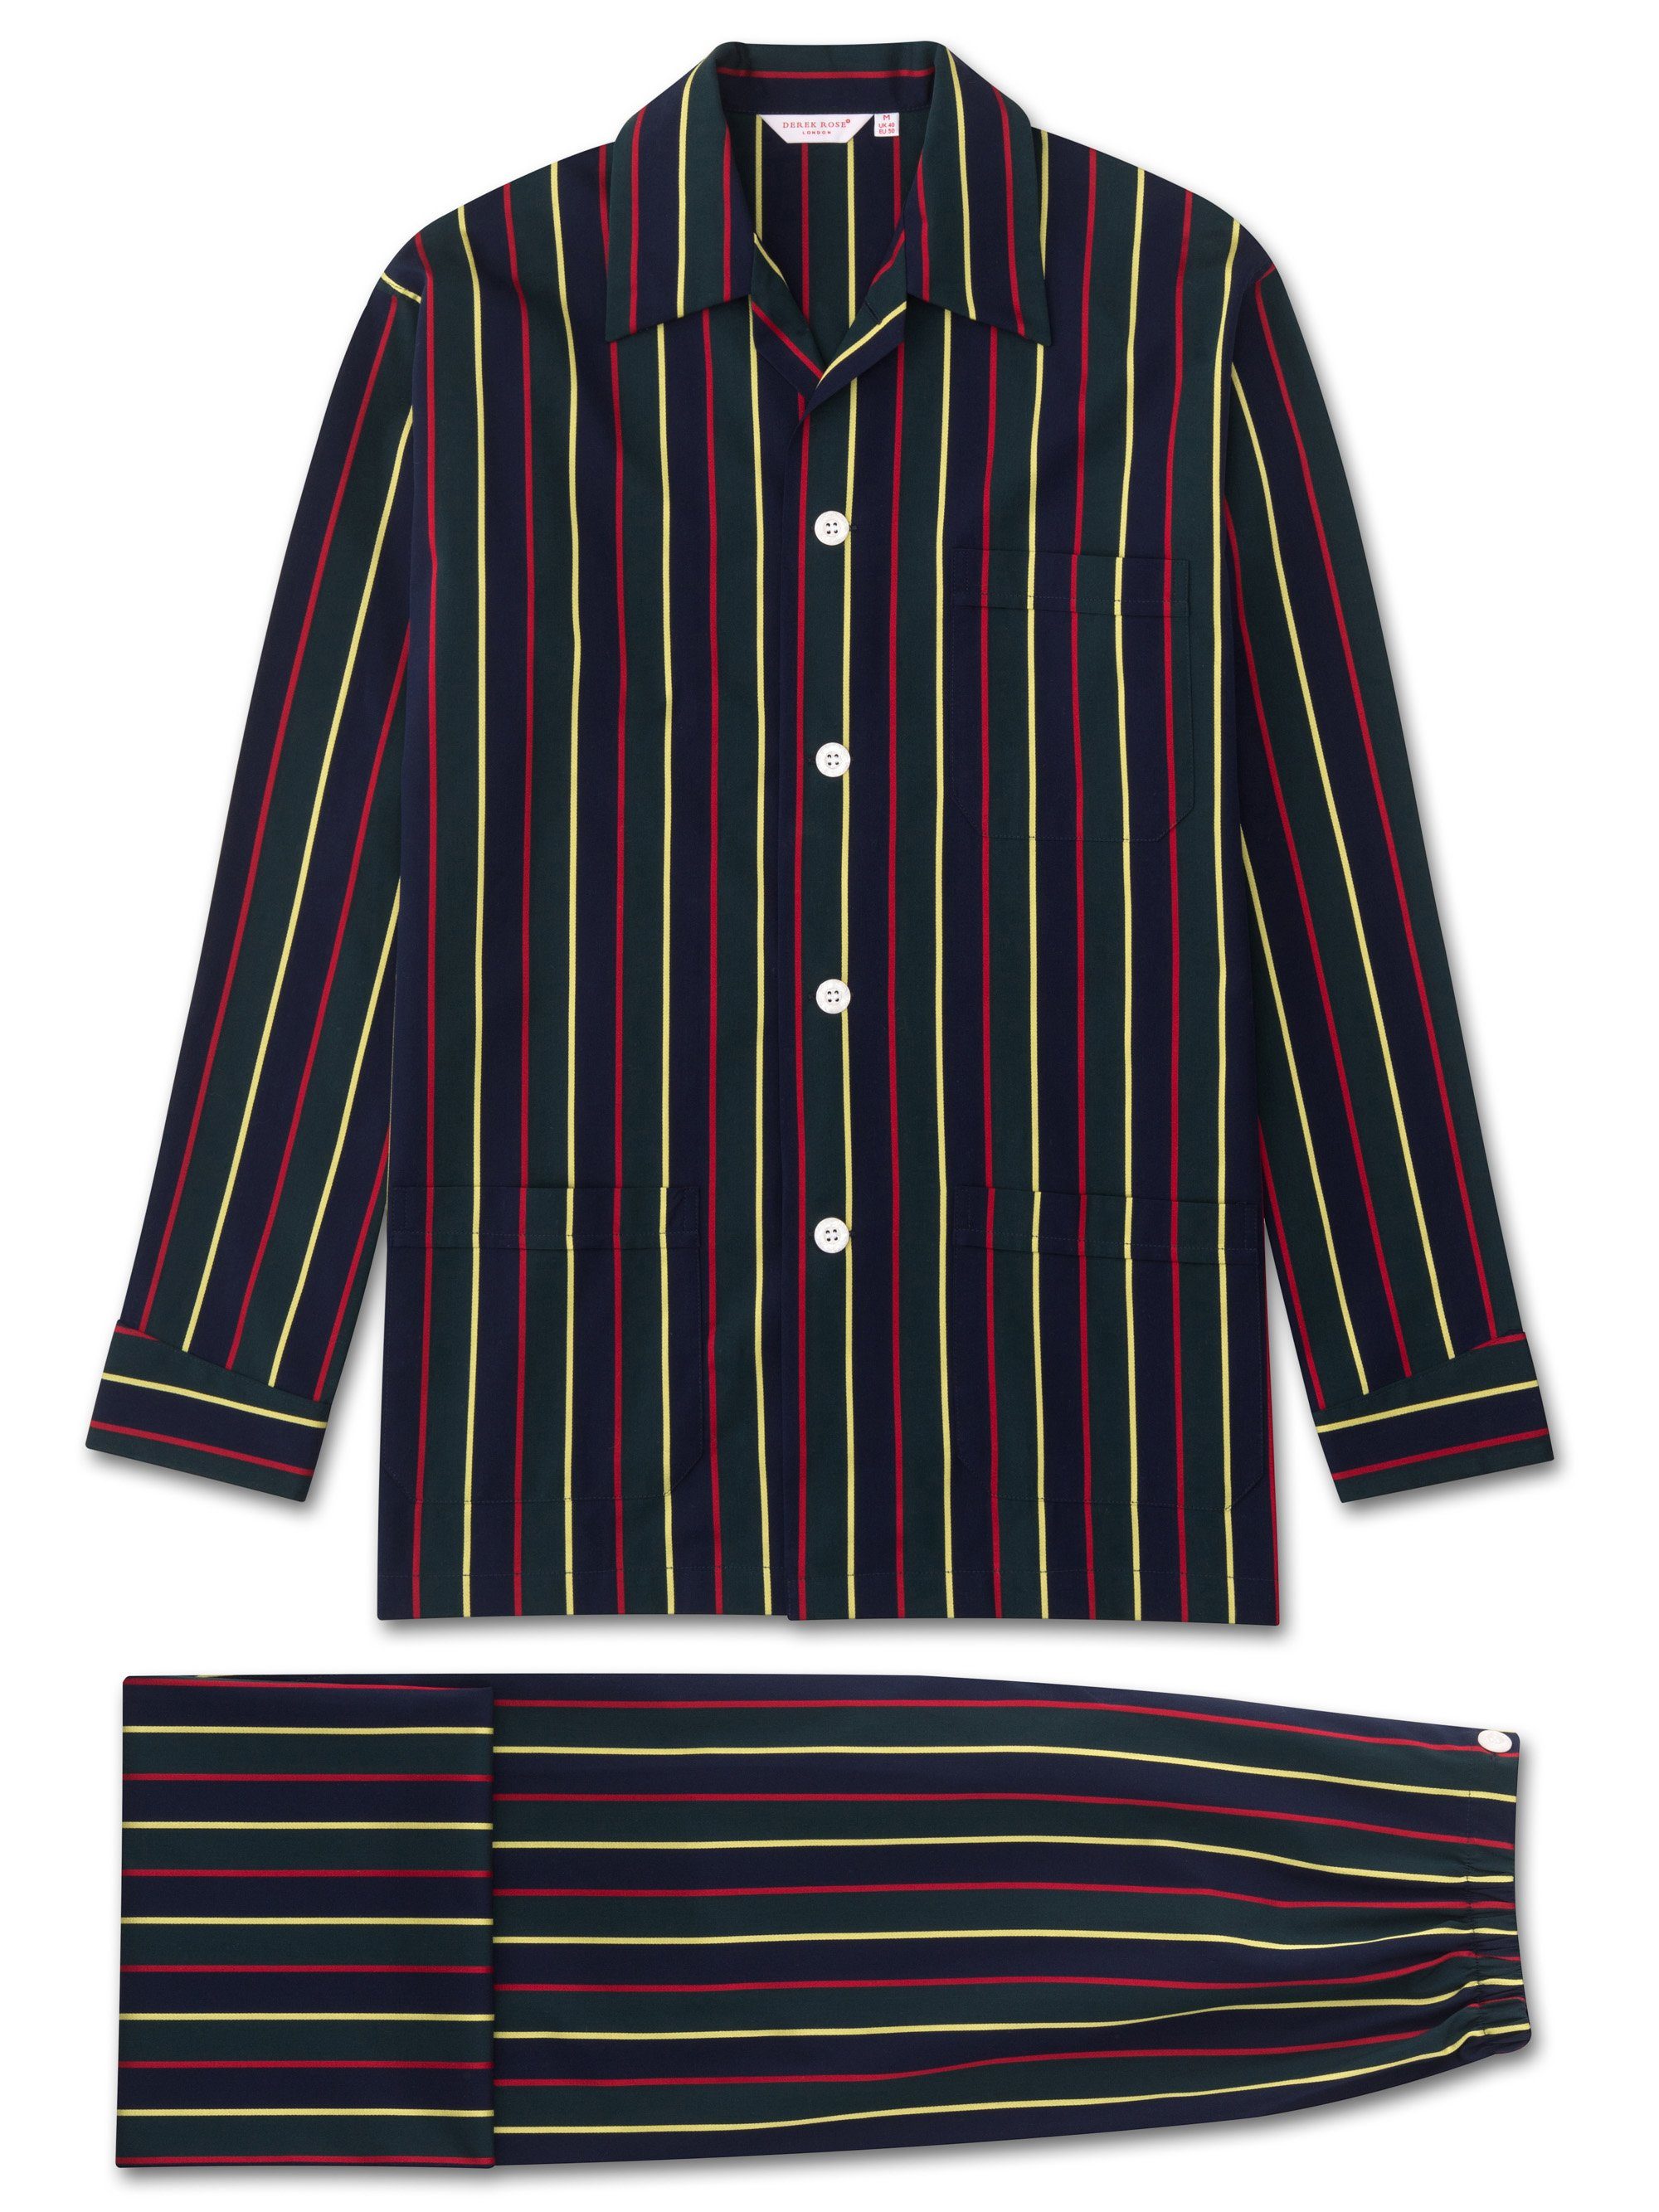 Men's Classic Fit Pyjamas Pure Cotton Satin Stripe Regimental ASH